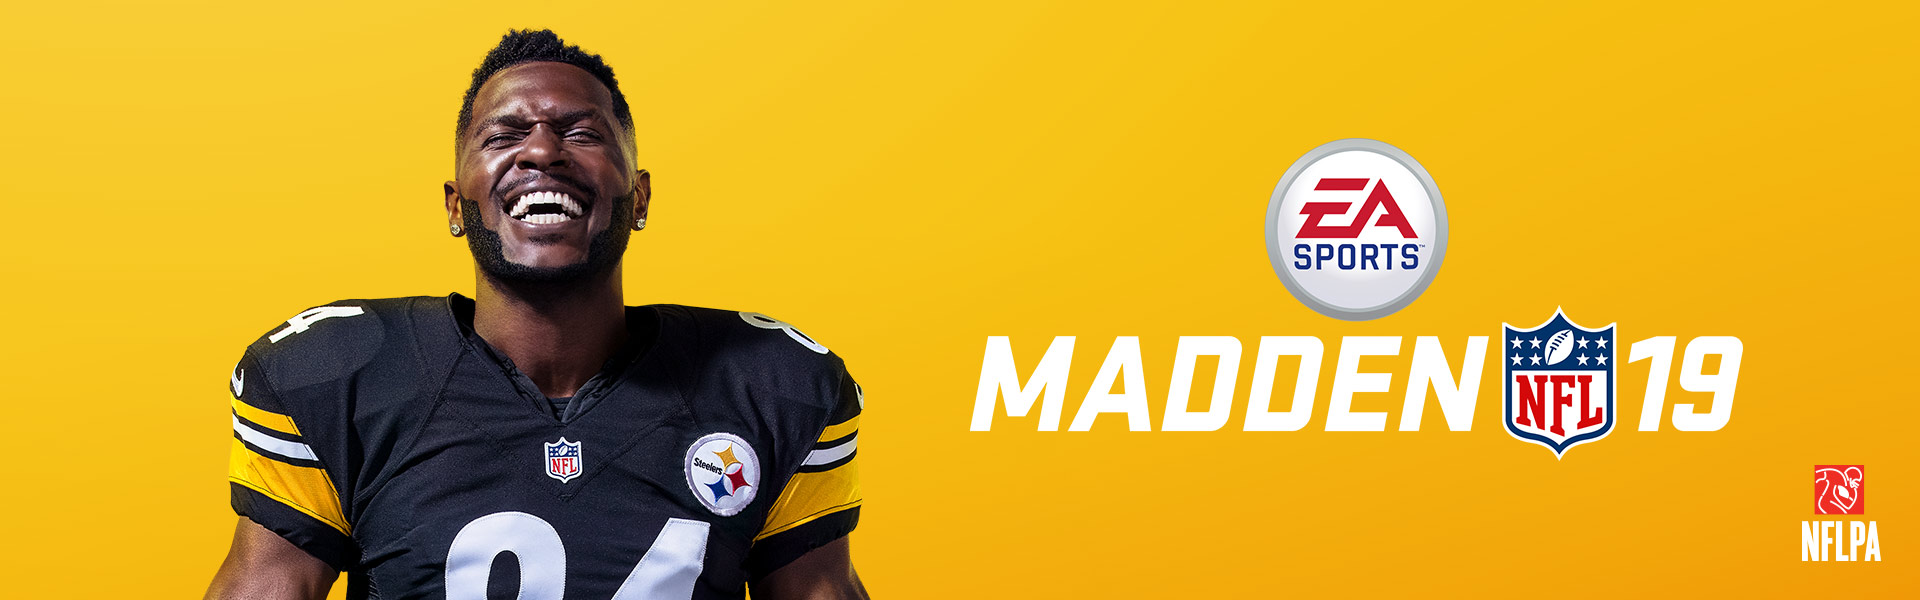 EA Sports Madden NFL 19, An elated Antonio Brown smiles